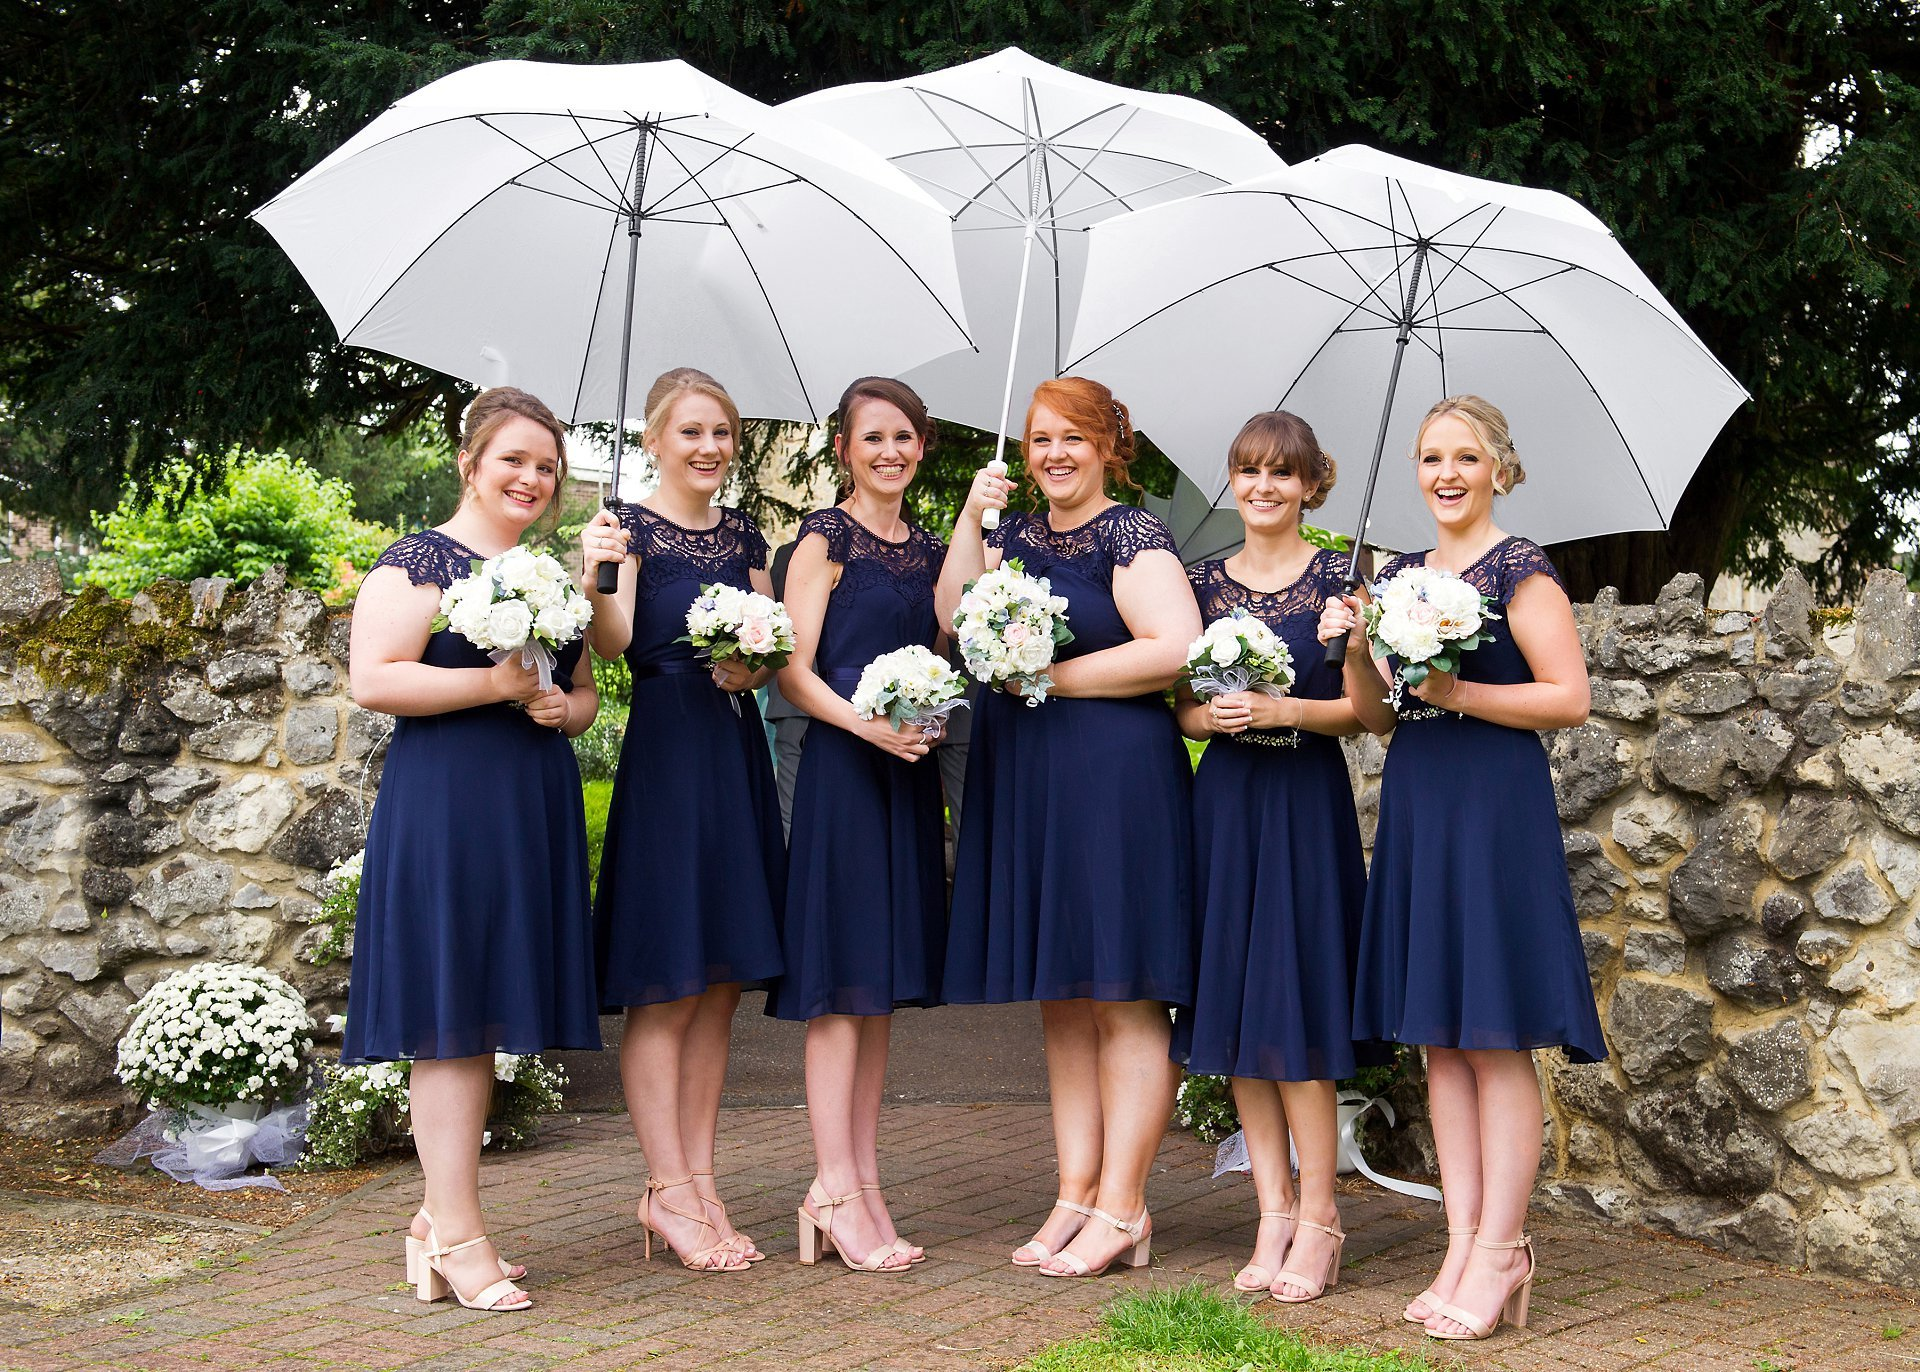 The bridesmaids for Sarah's wedding day wearng pretty navy blue just below knee-length dresses and holding white umbrellas